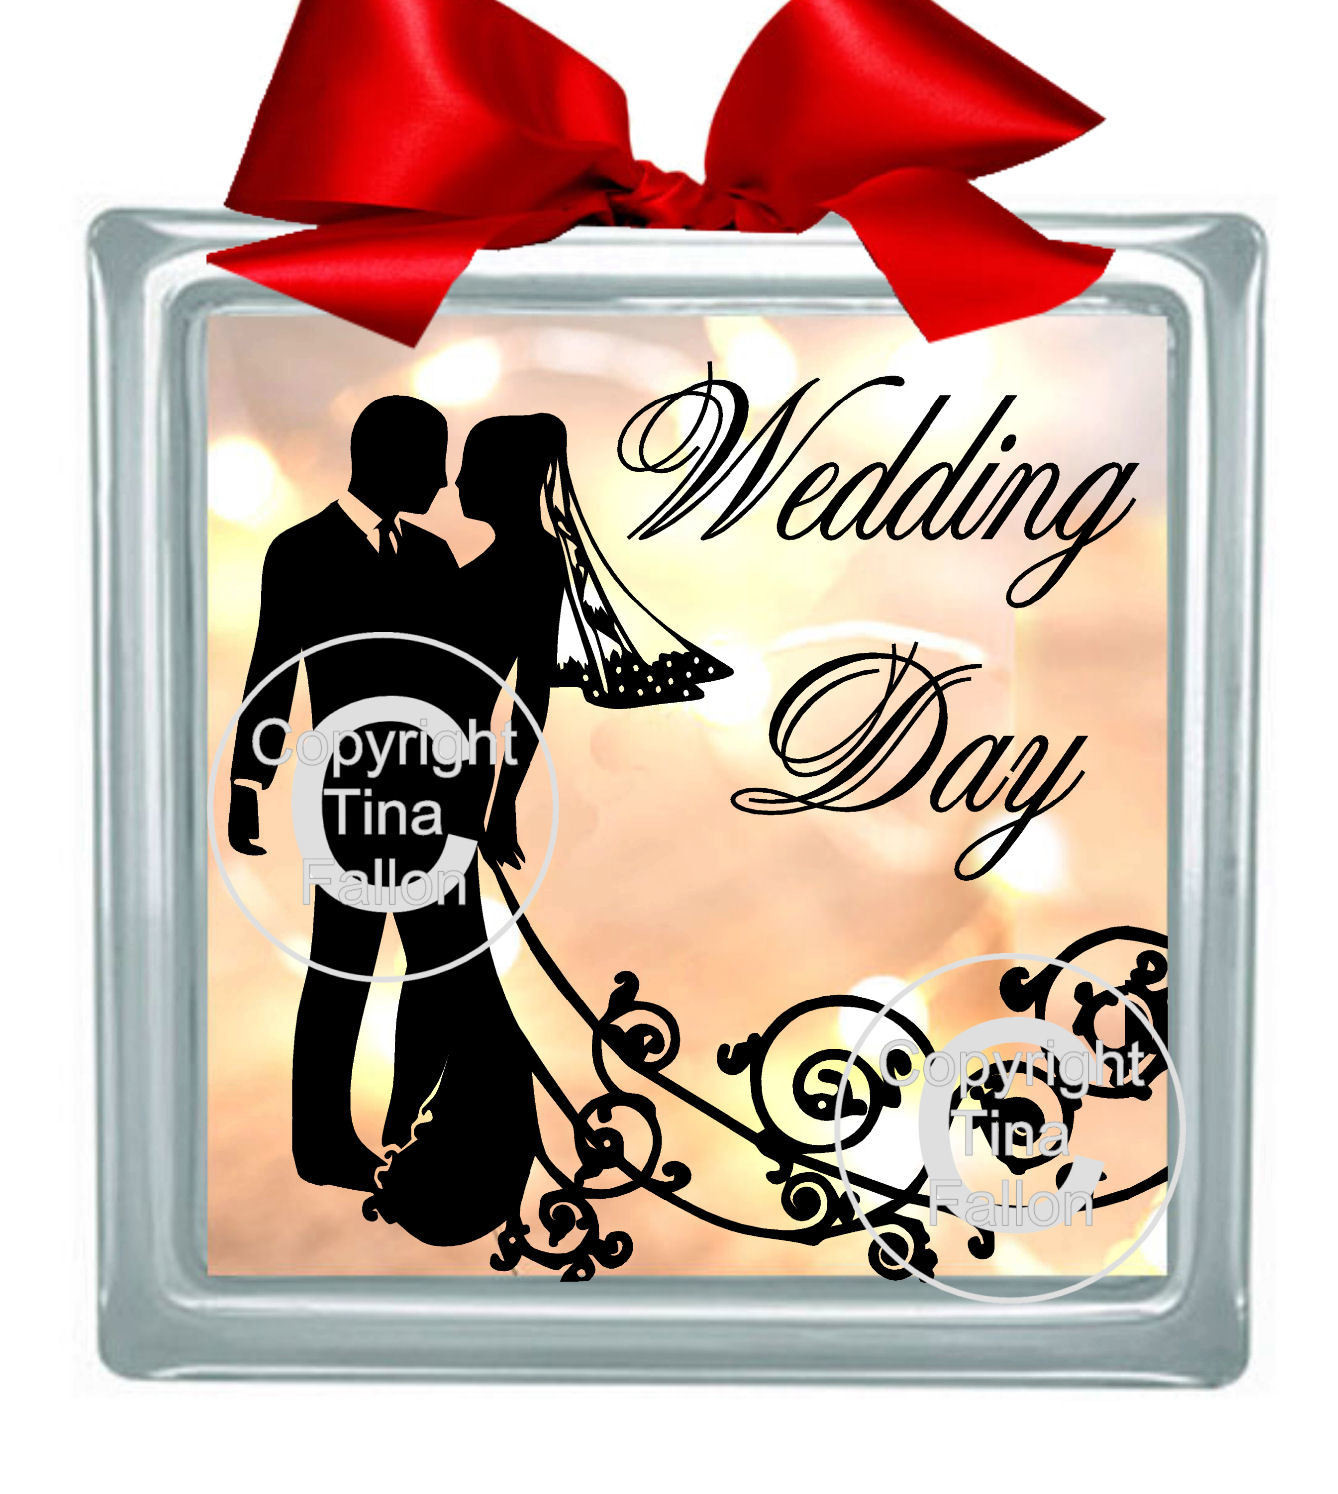 WEDDING COUPLE 1 Glass Block Tile Design 6x6 inches please read info